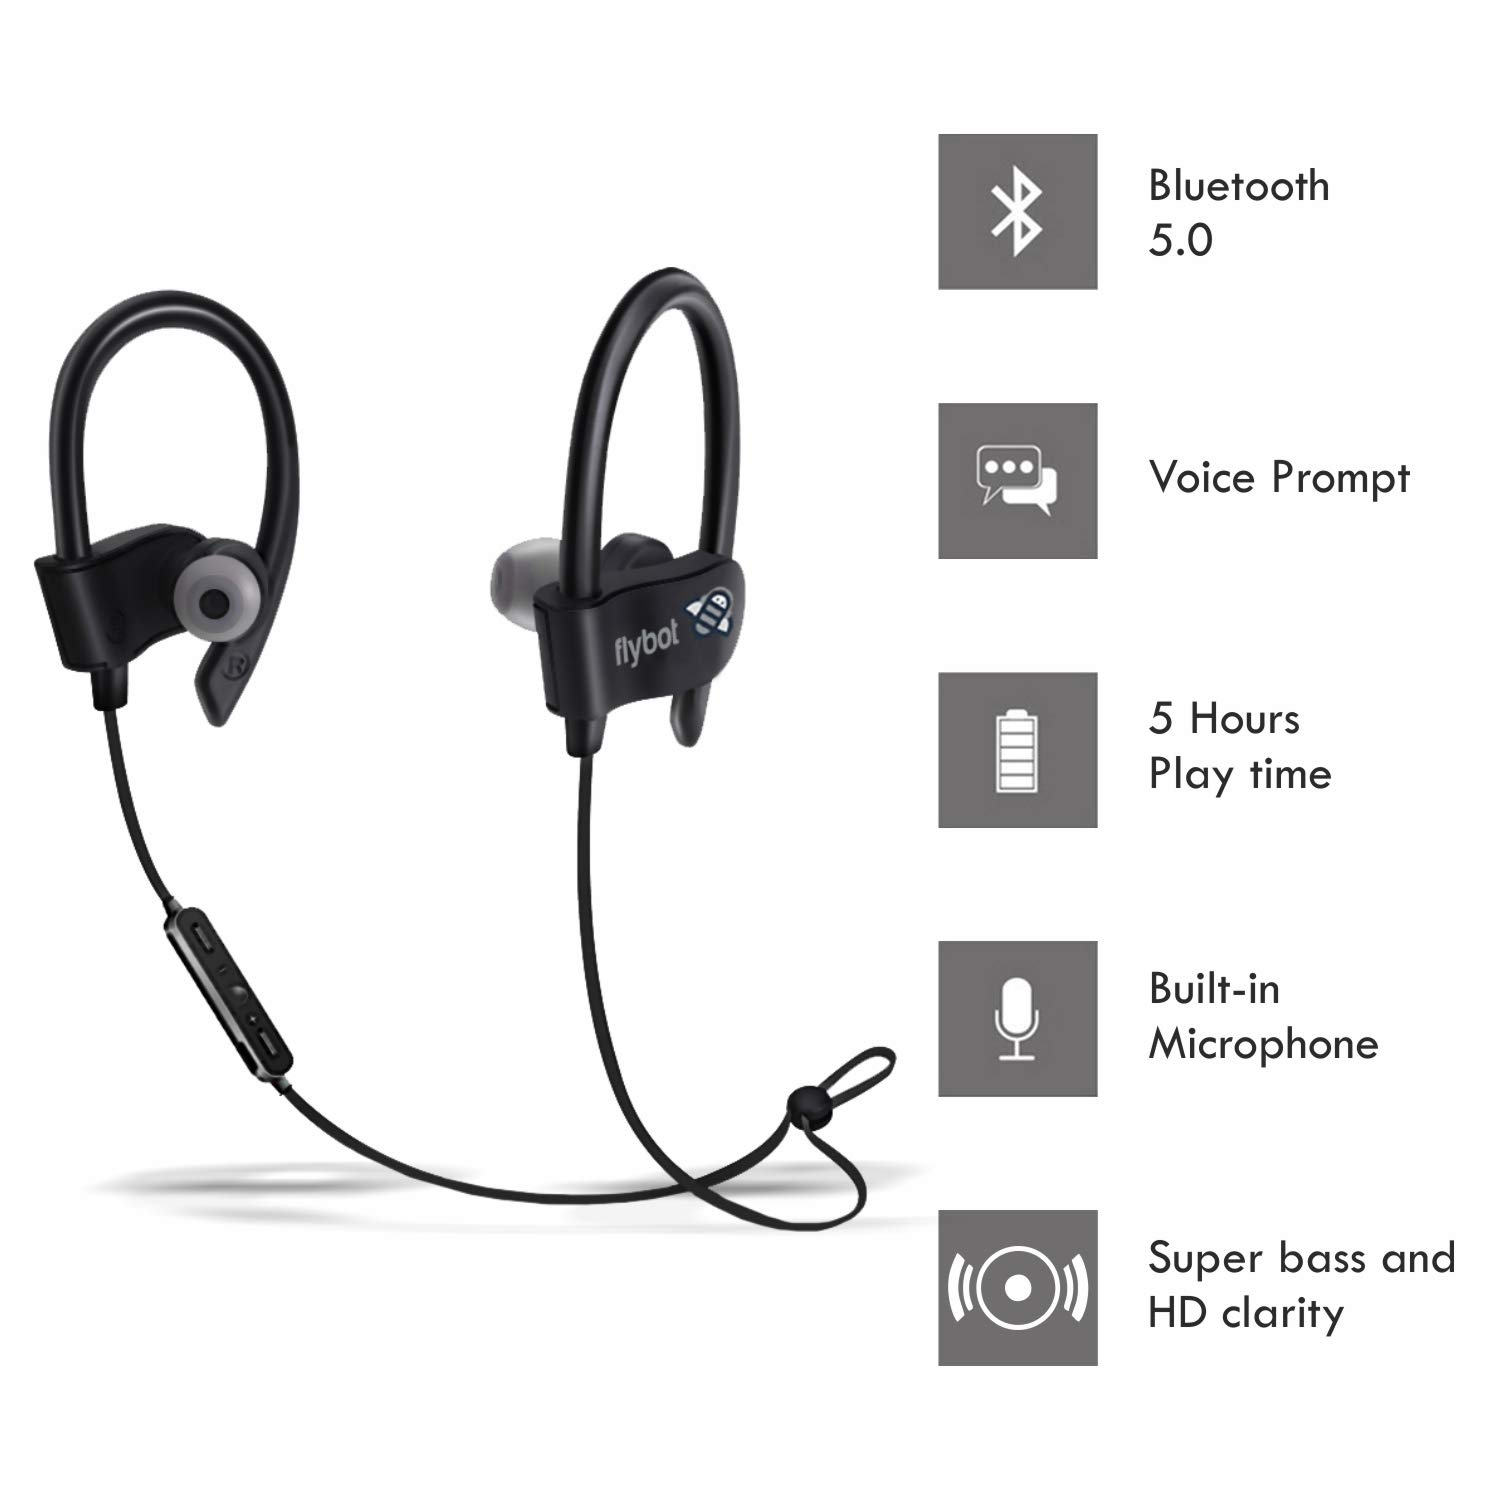 Flybot Wave in-Ear Sport Wireless Bluetooth 5.0 Earphone with Mic and IPX4 Sweatproof